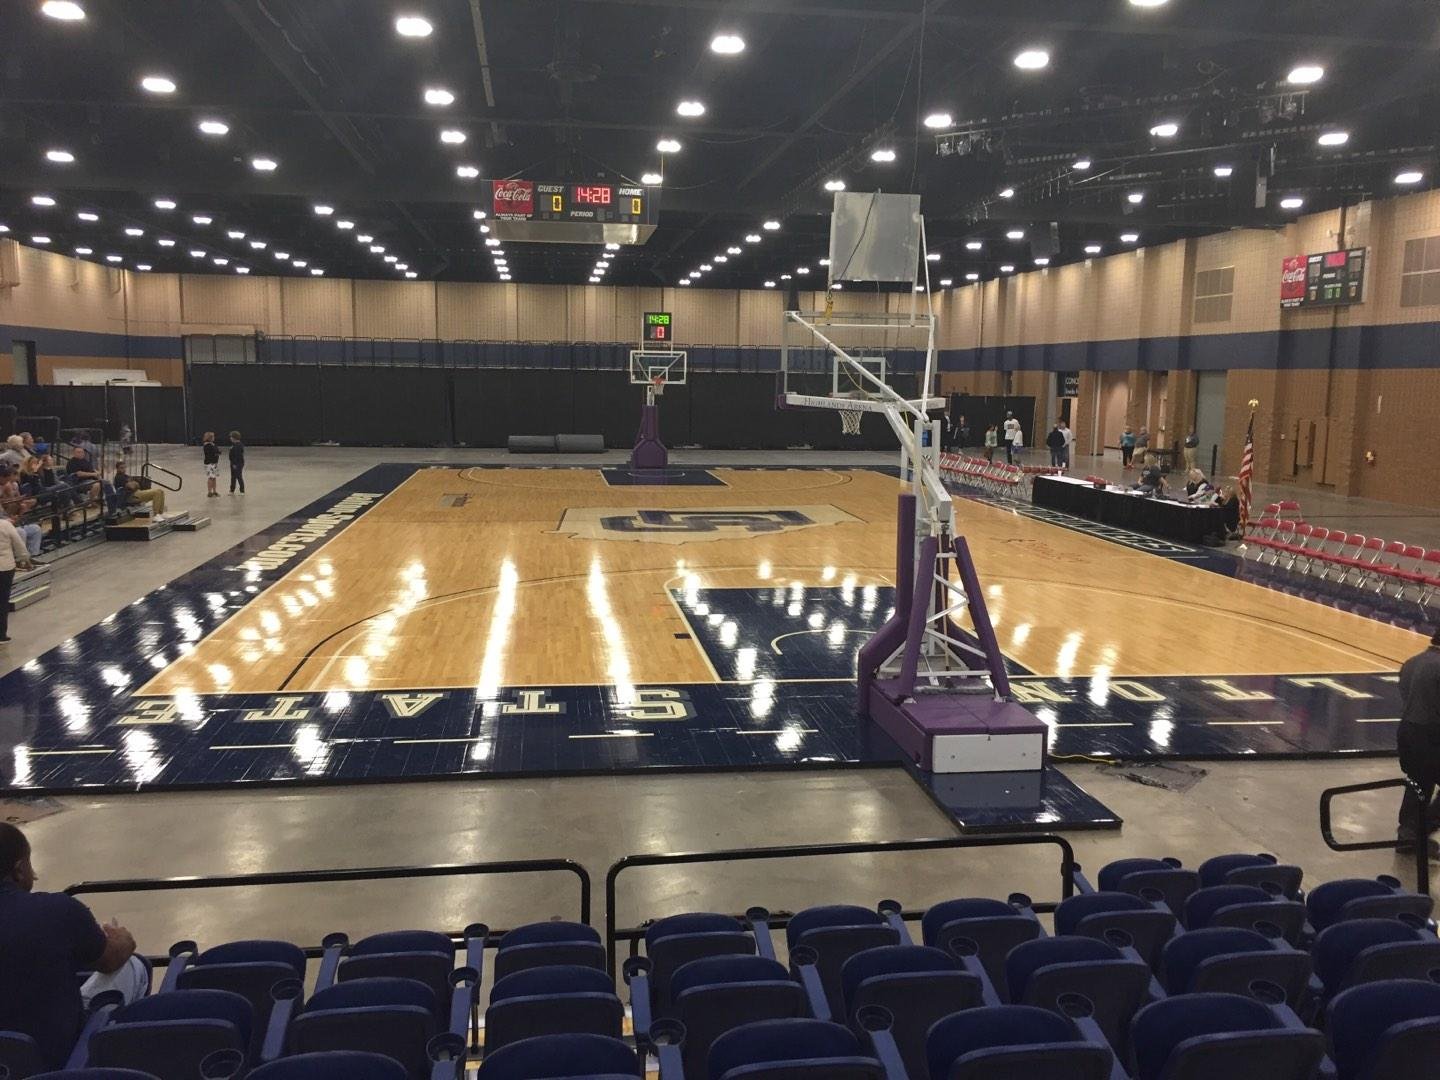 Mashburn Arena Section 2 Row HH Seat 7